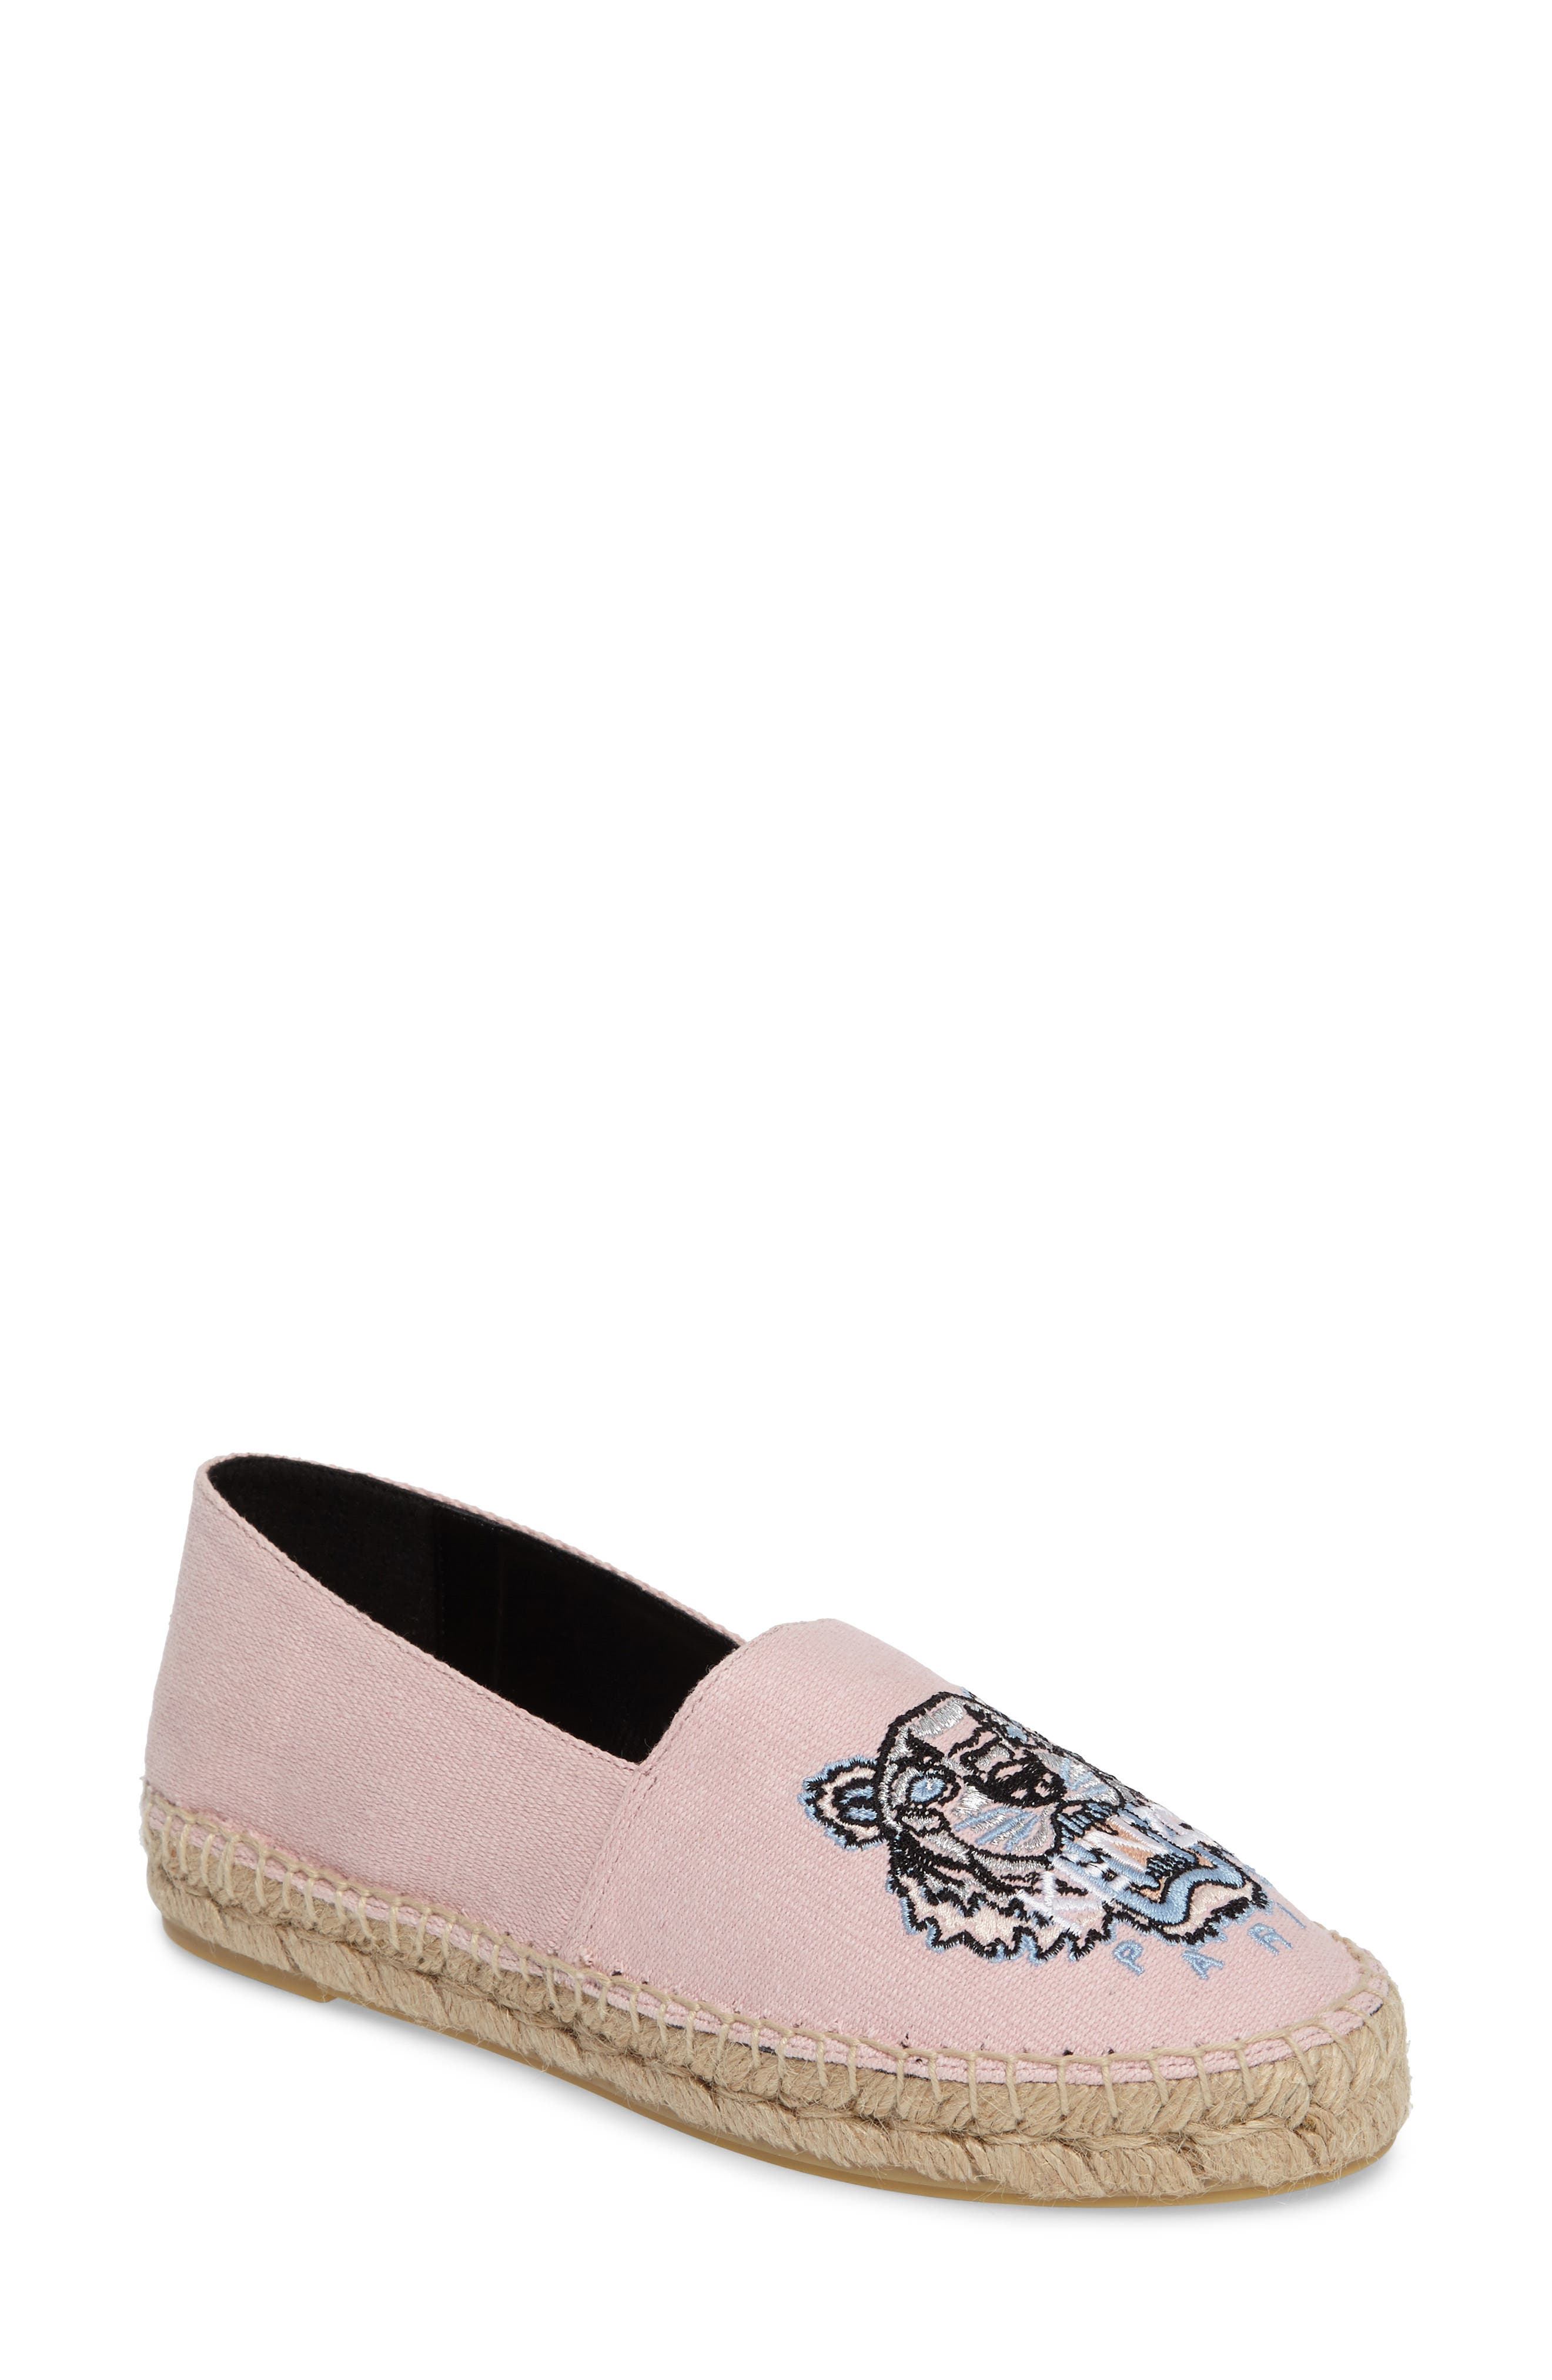 Alternate Image 1 Selected - KENZO Tiger Logo Embroidered Espadrille (Women)